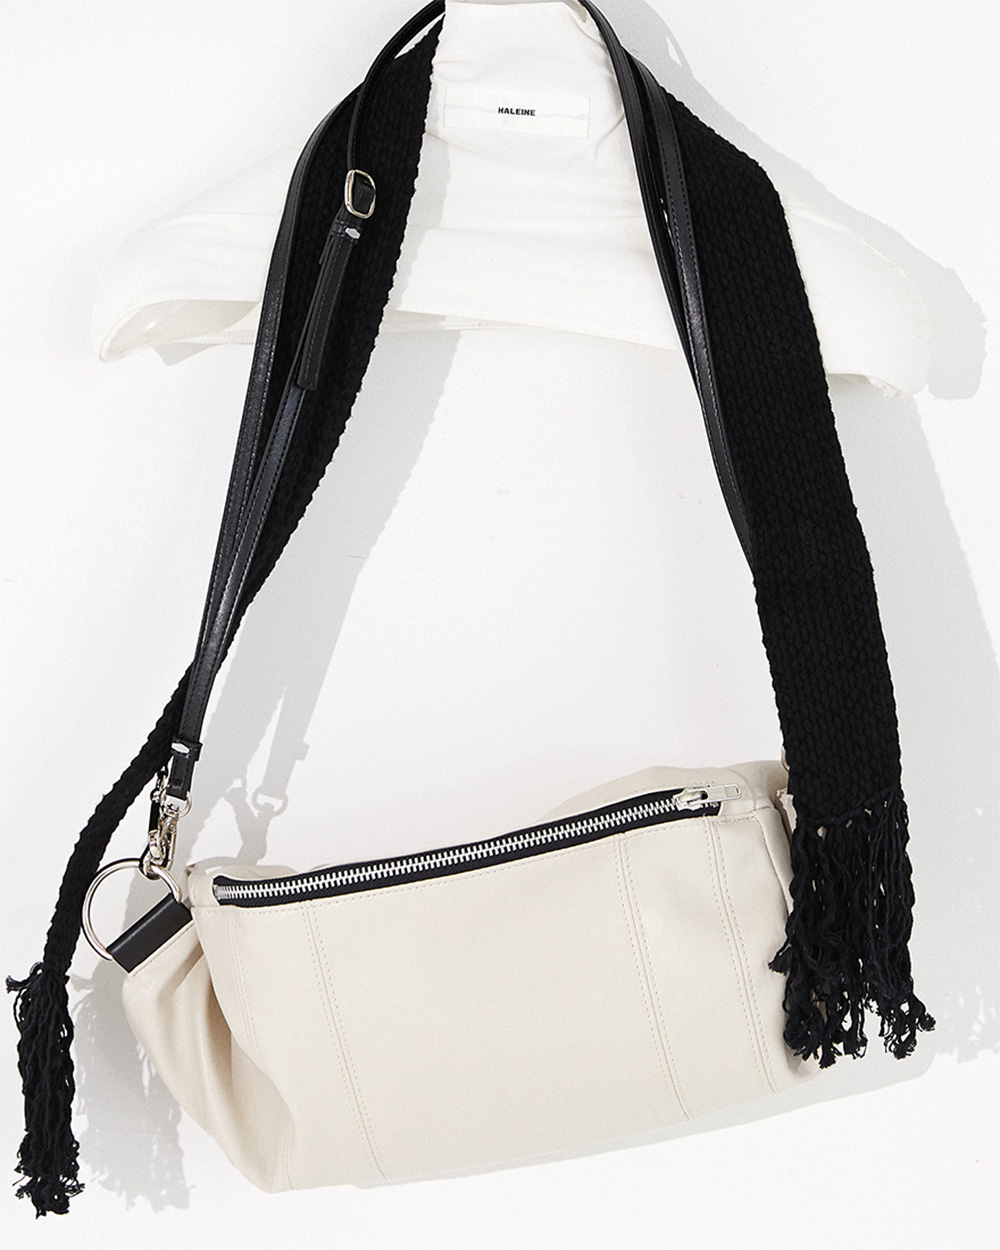 HALEINE알렌느 CREAM eco leather tassle cross bag(NA005)